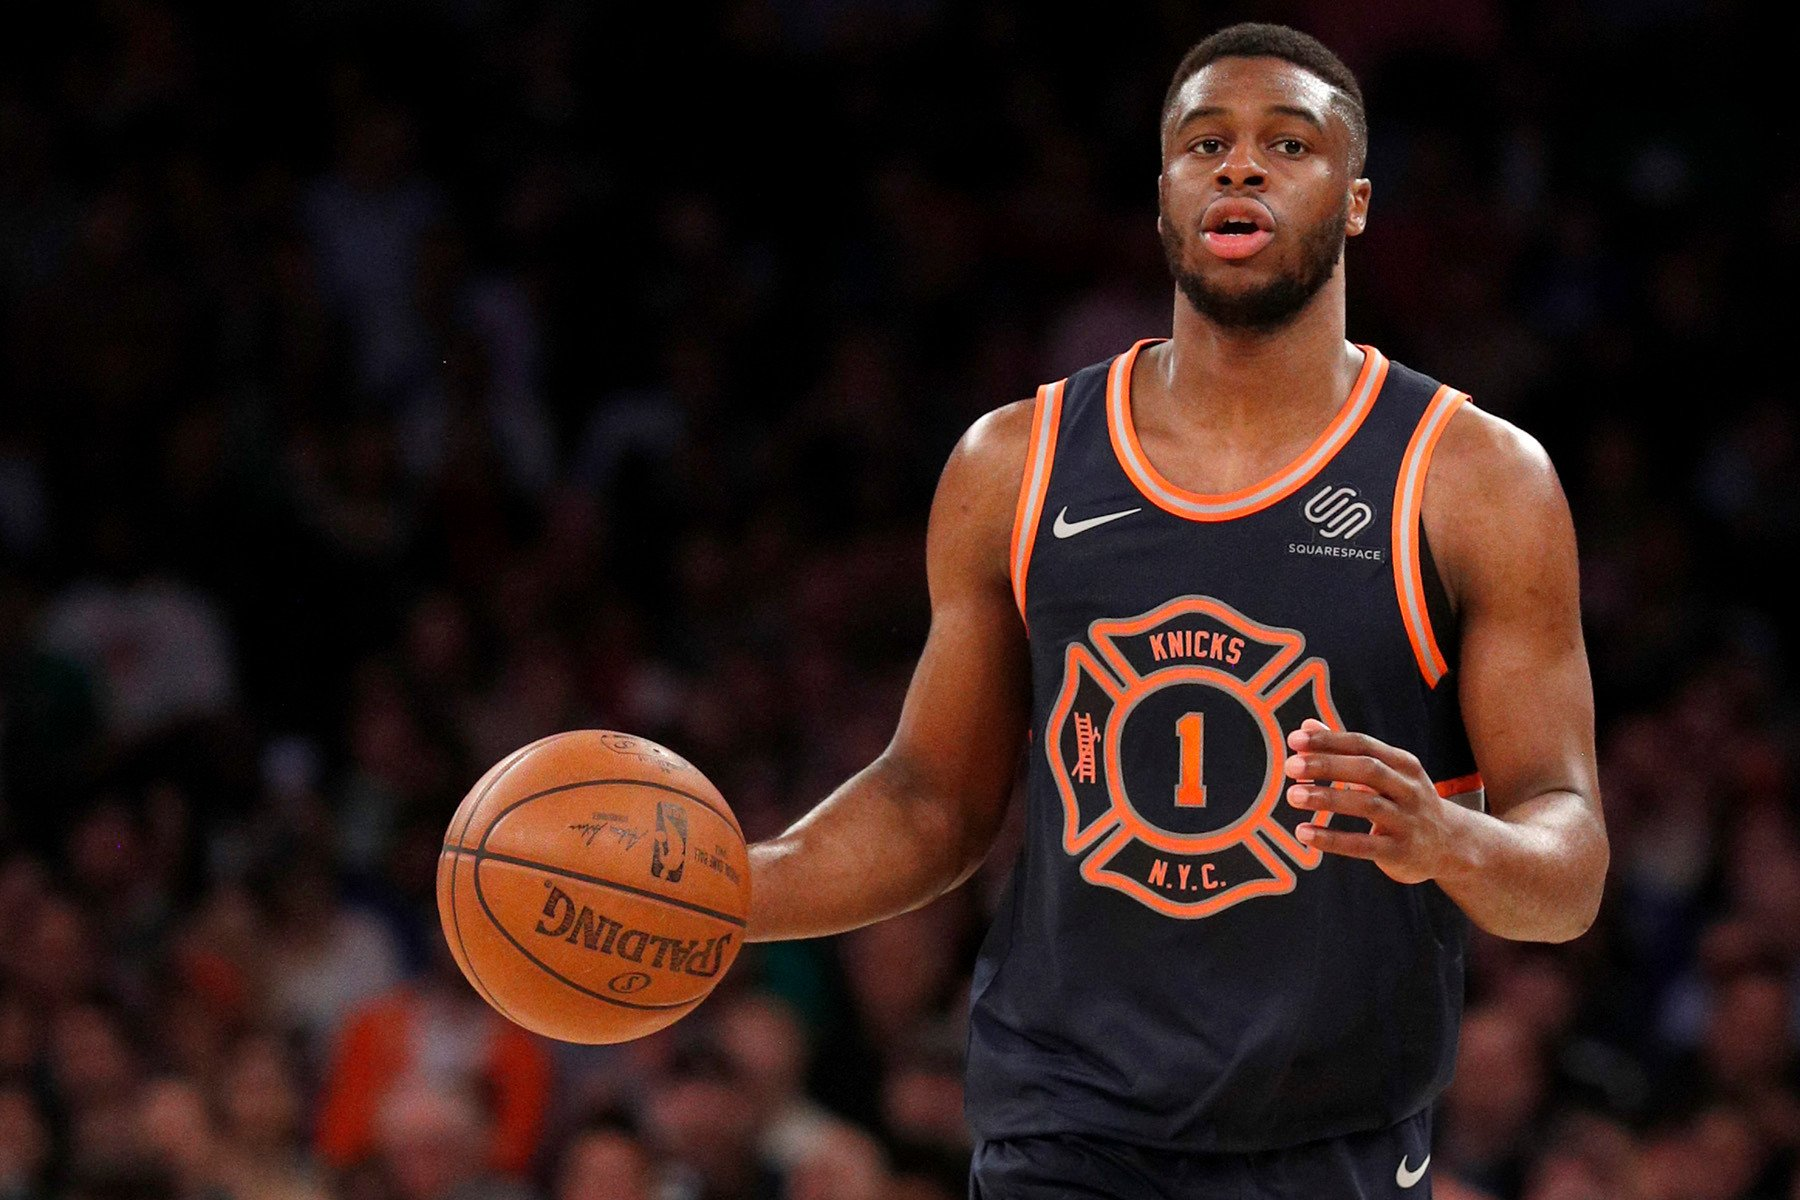 Emmanuel Mudiay is still Knicks' starting point guard with a catch